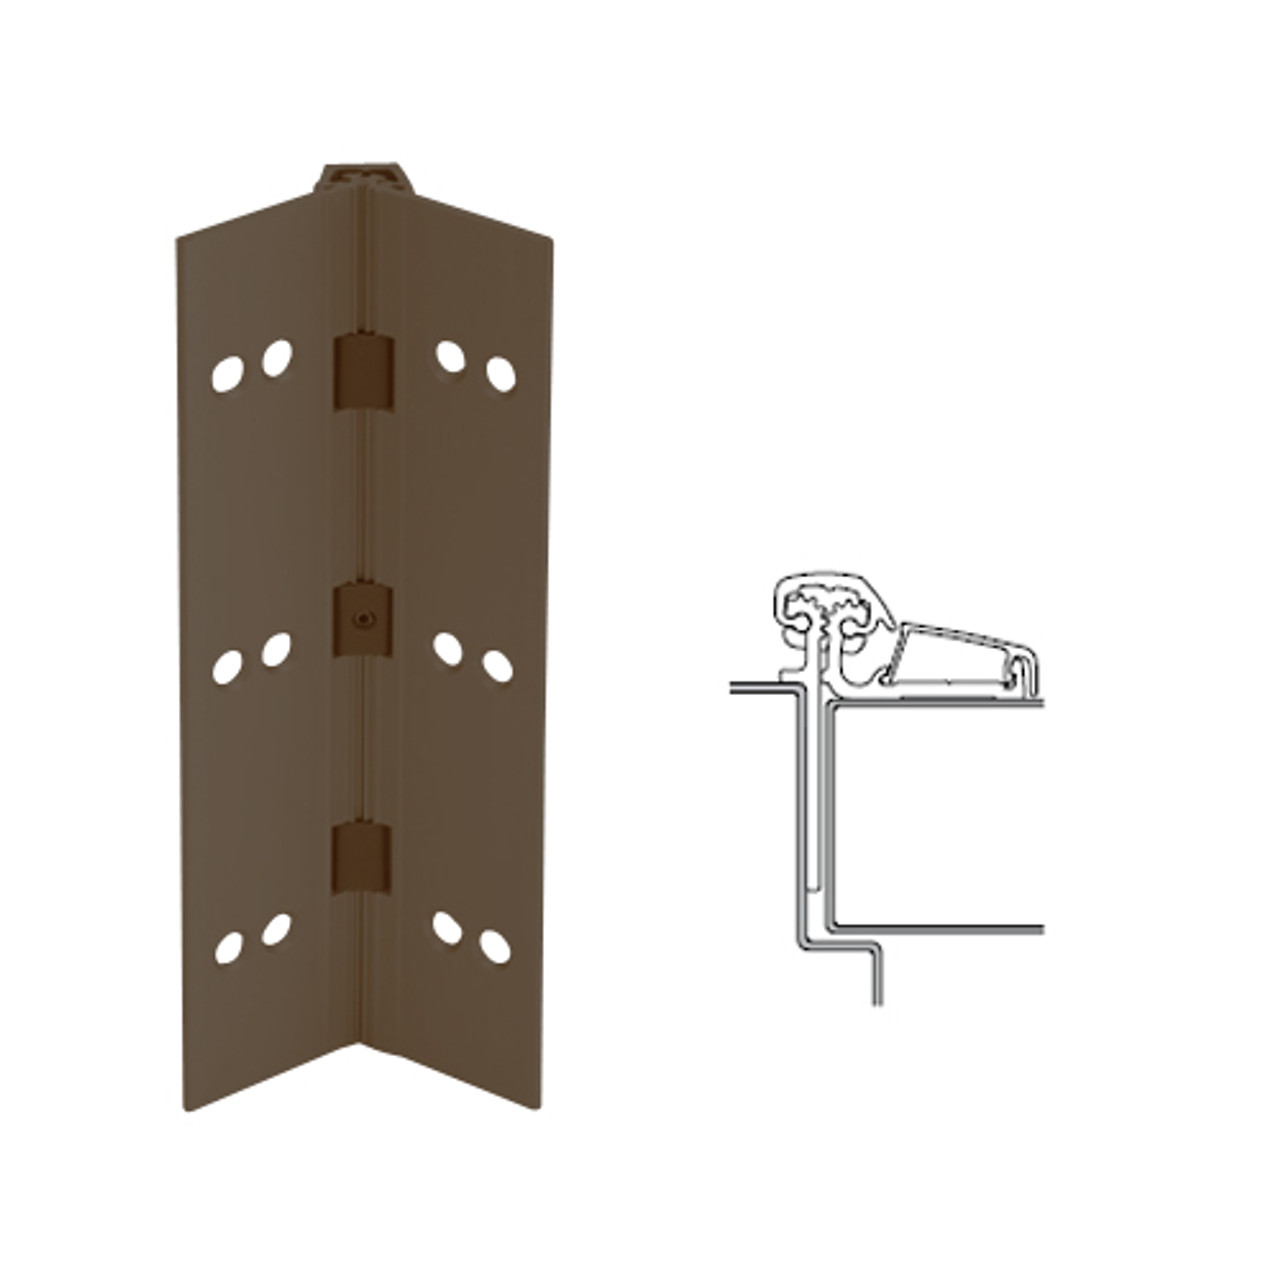 053XY-313AN-85 IVES Adjustable Half Surface Continuous Geared Hinges in Dark Bronze Anodized